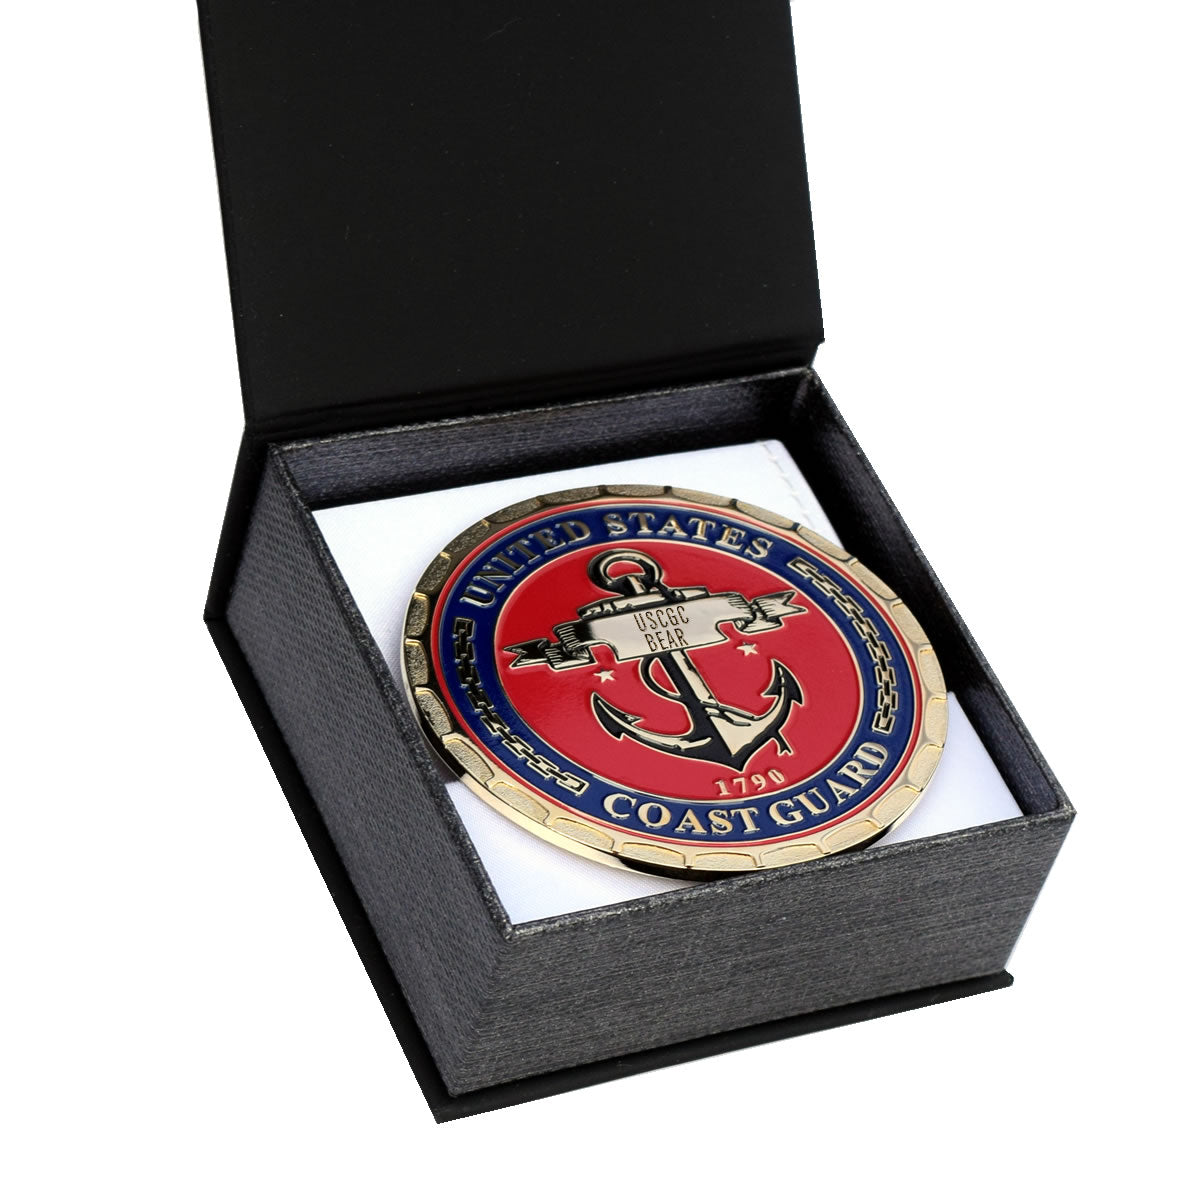 USCGC BEAR WMEC-901 COAST GUARD PLAQUE